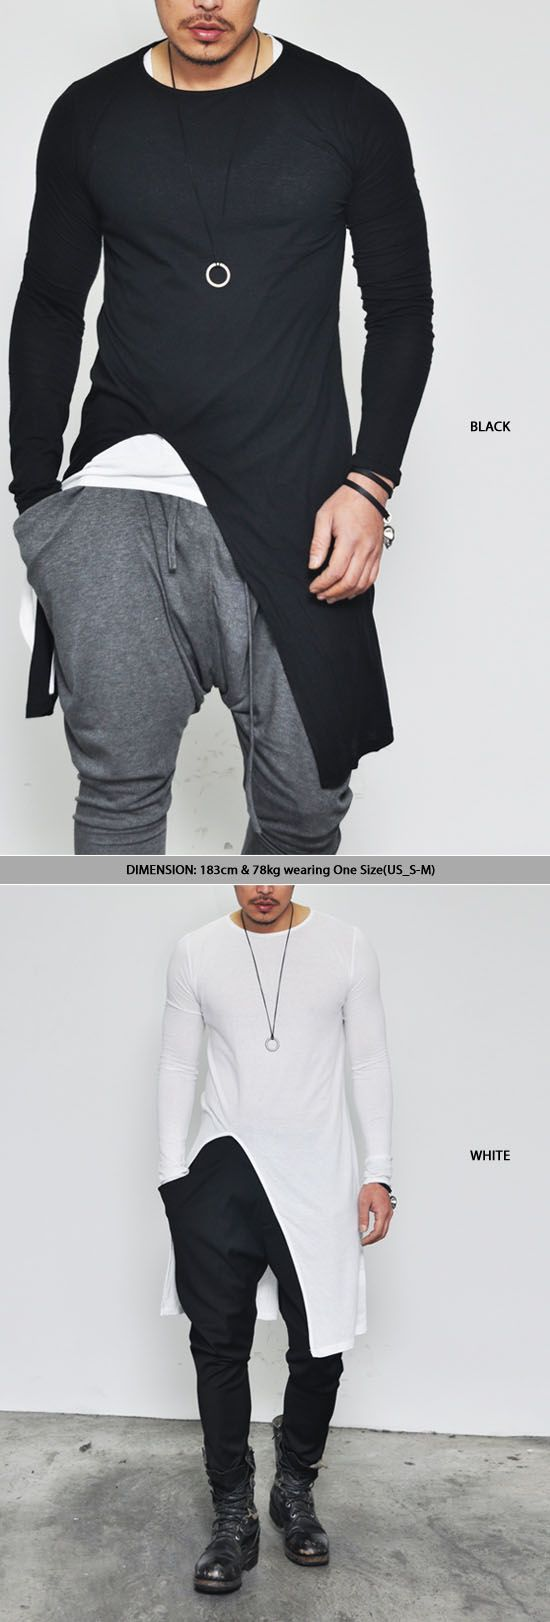 Best 25+ Guy clothes ideas only on Pinterest | Mens clothing ...